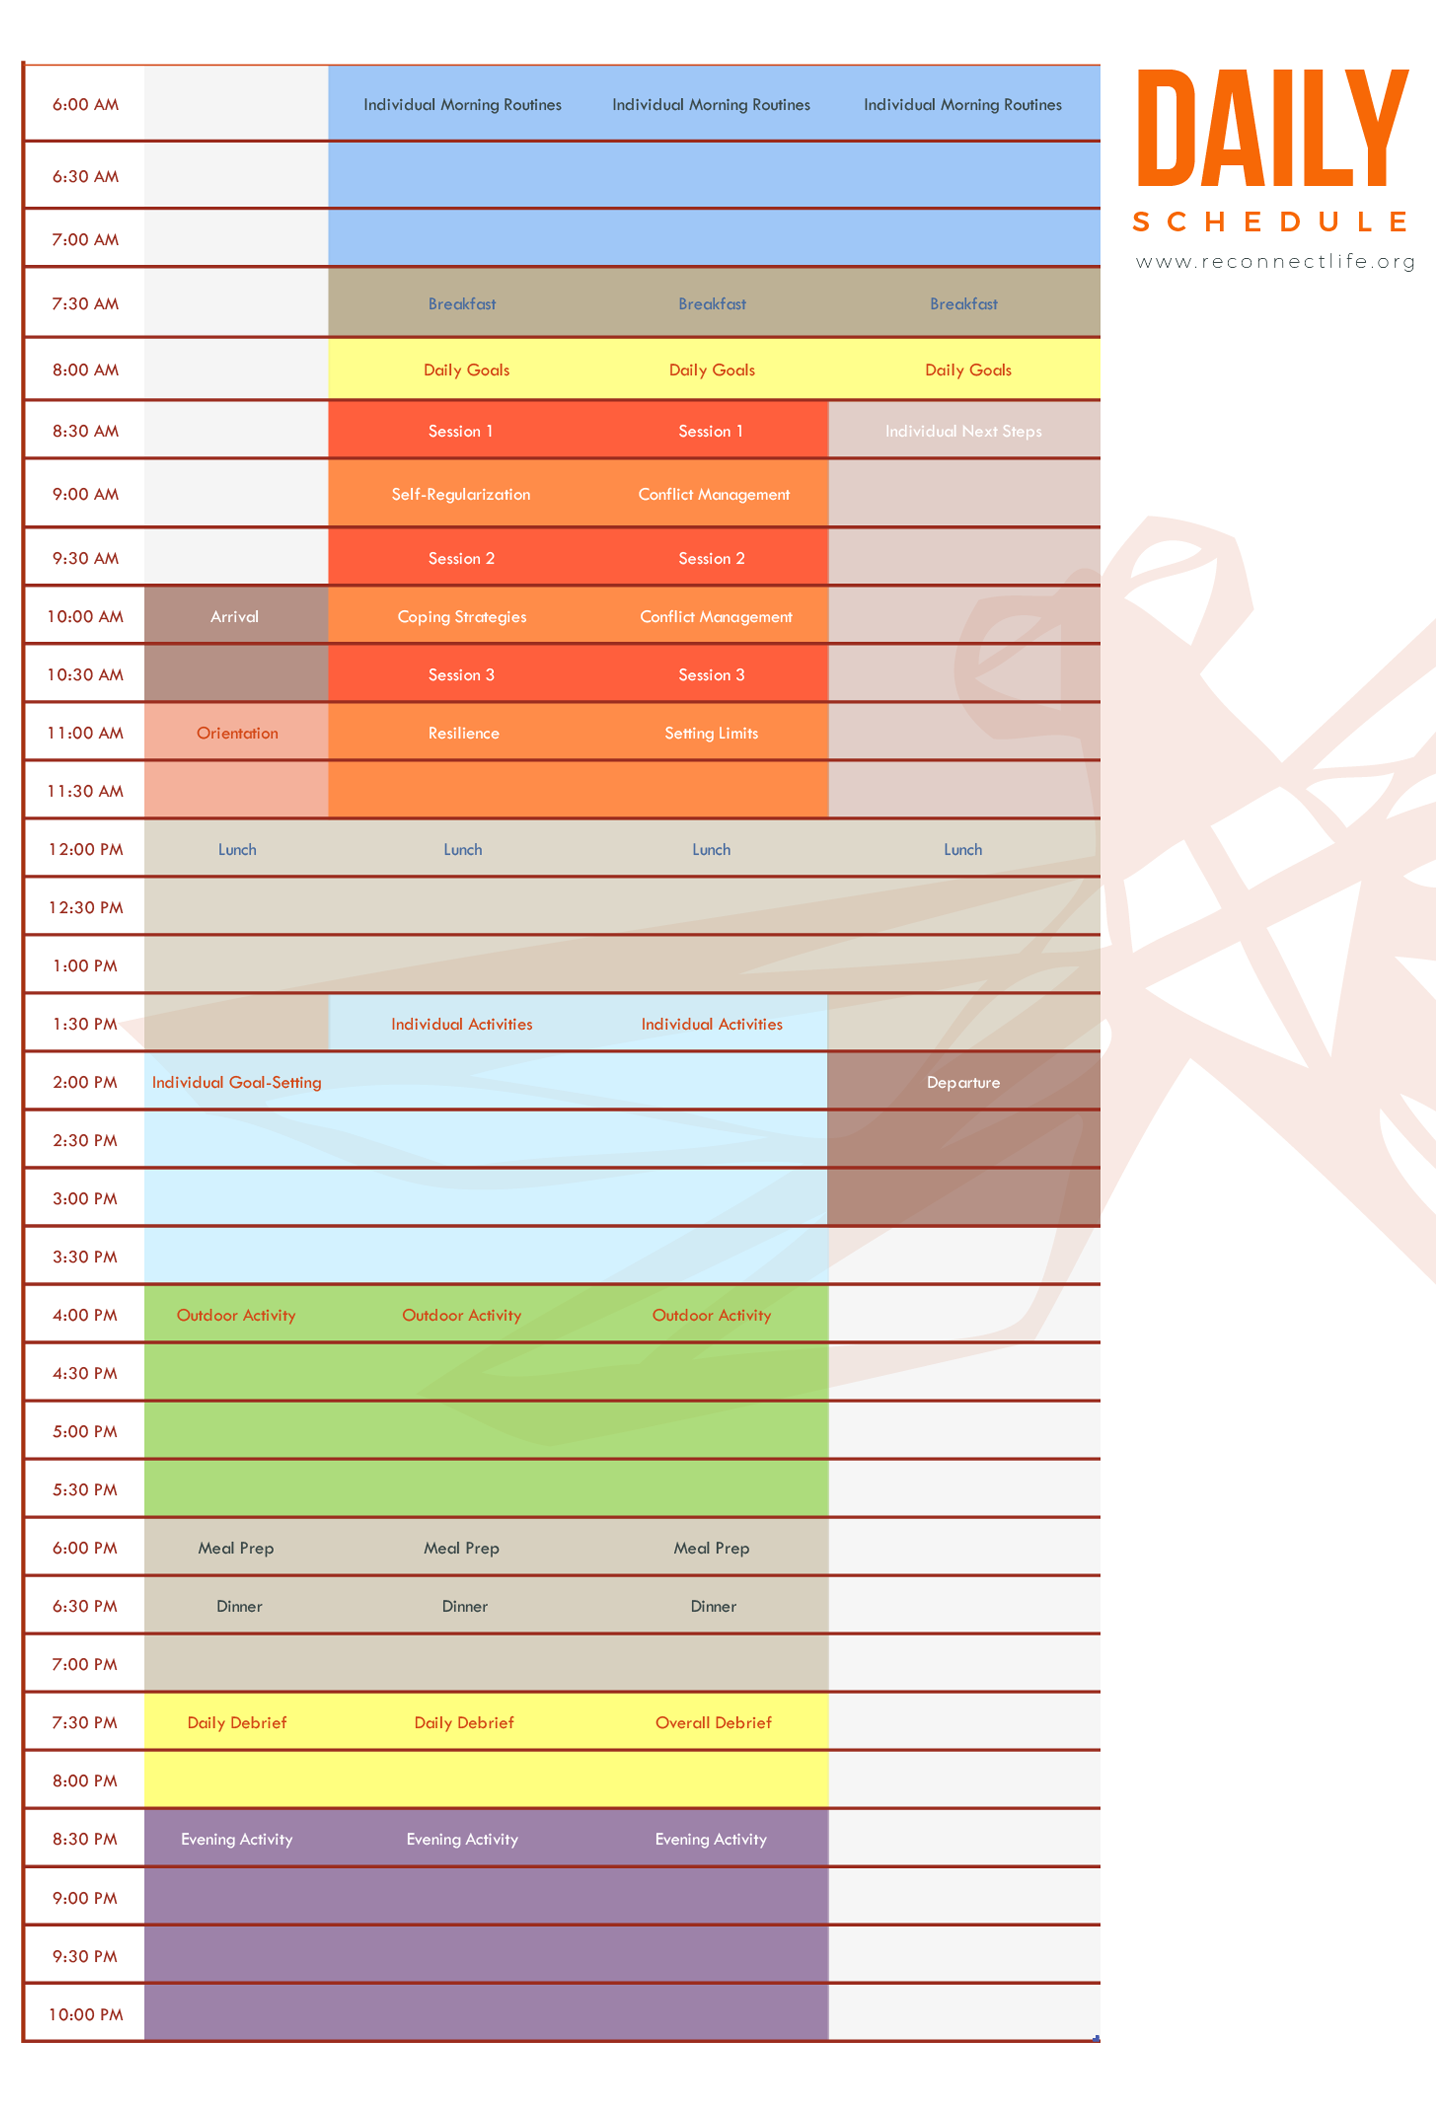 daily_schedule_sample.png